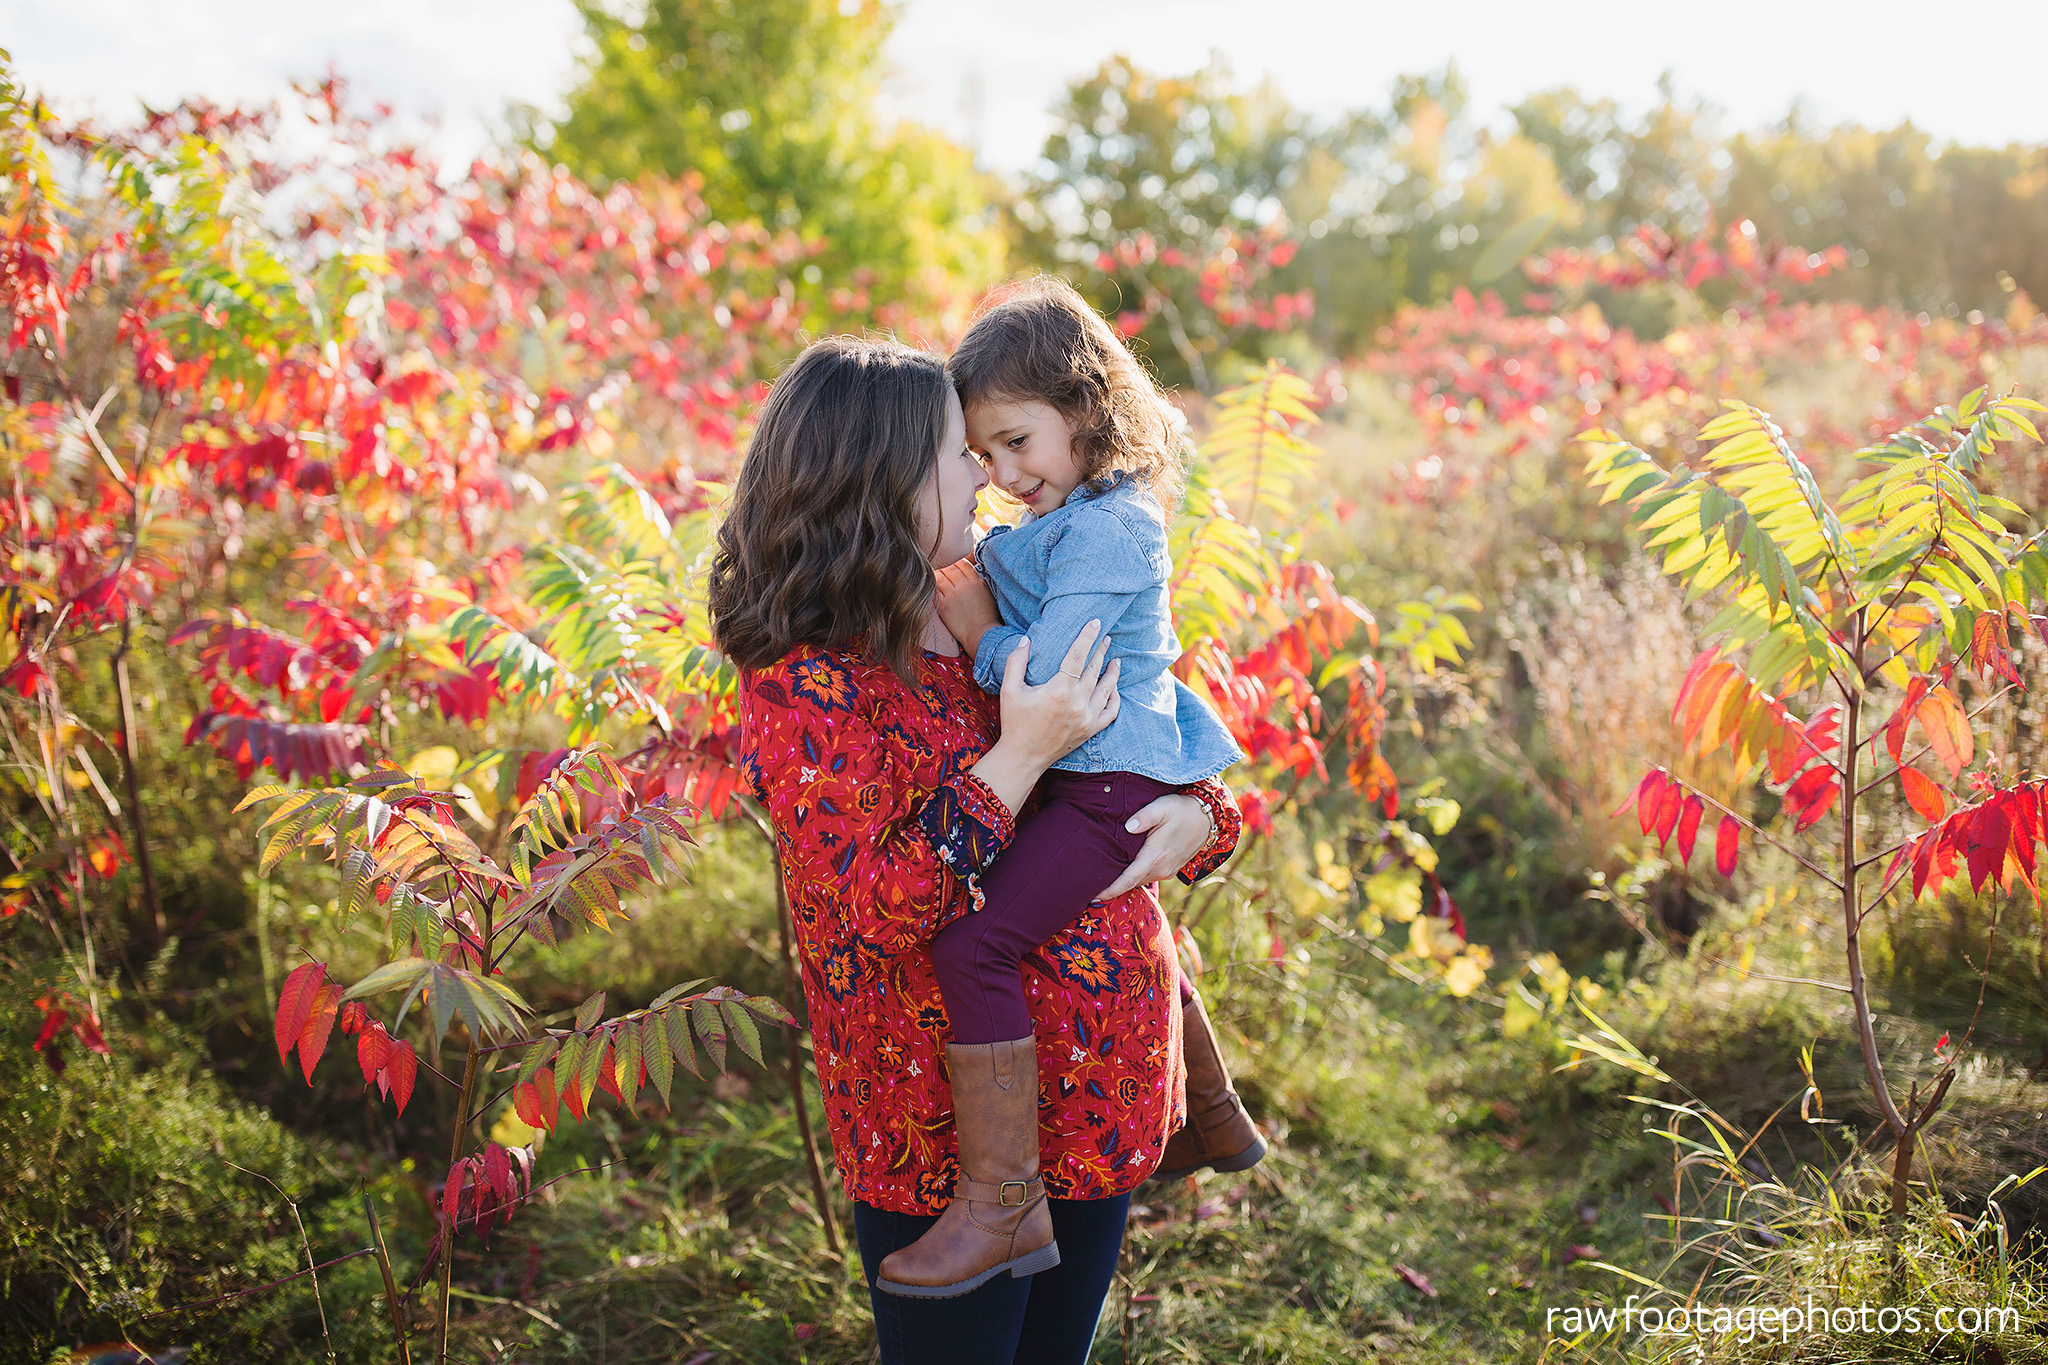 london_ontario_family_photographer-golden_hour_maternity_session-raw_footage_photography010.jpg